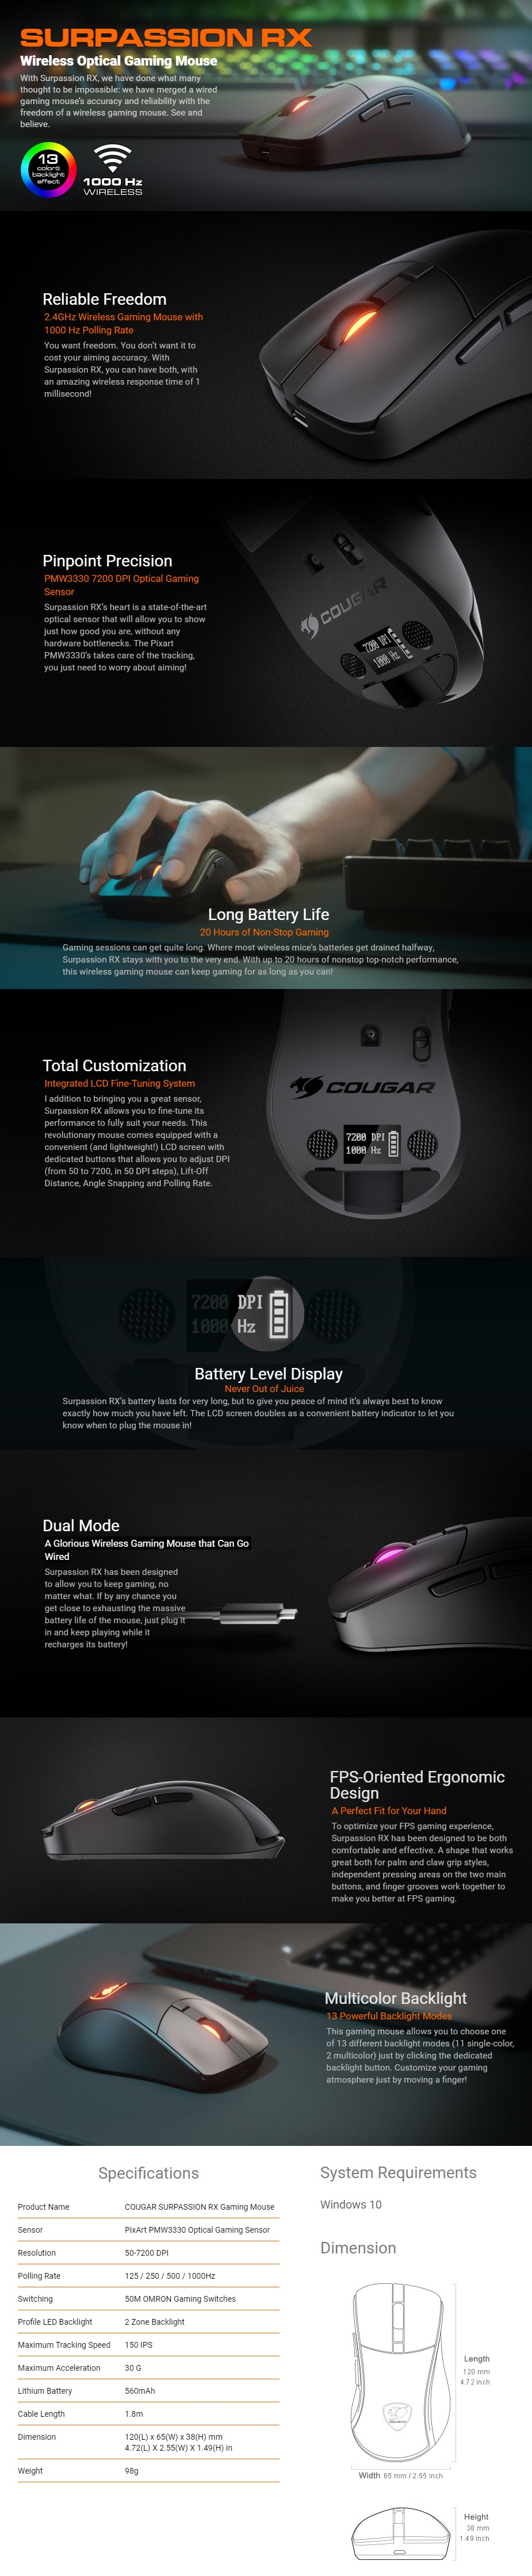 Cougar Surpassion RX Wireless RGB Gaming Mouse - Desktop Overview 1